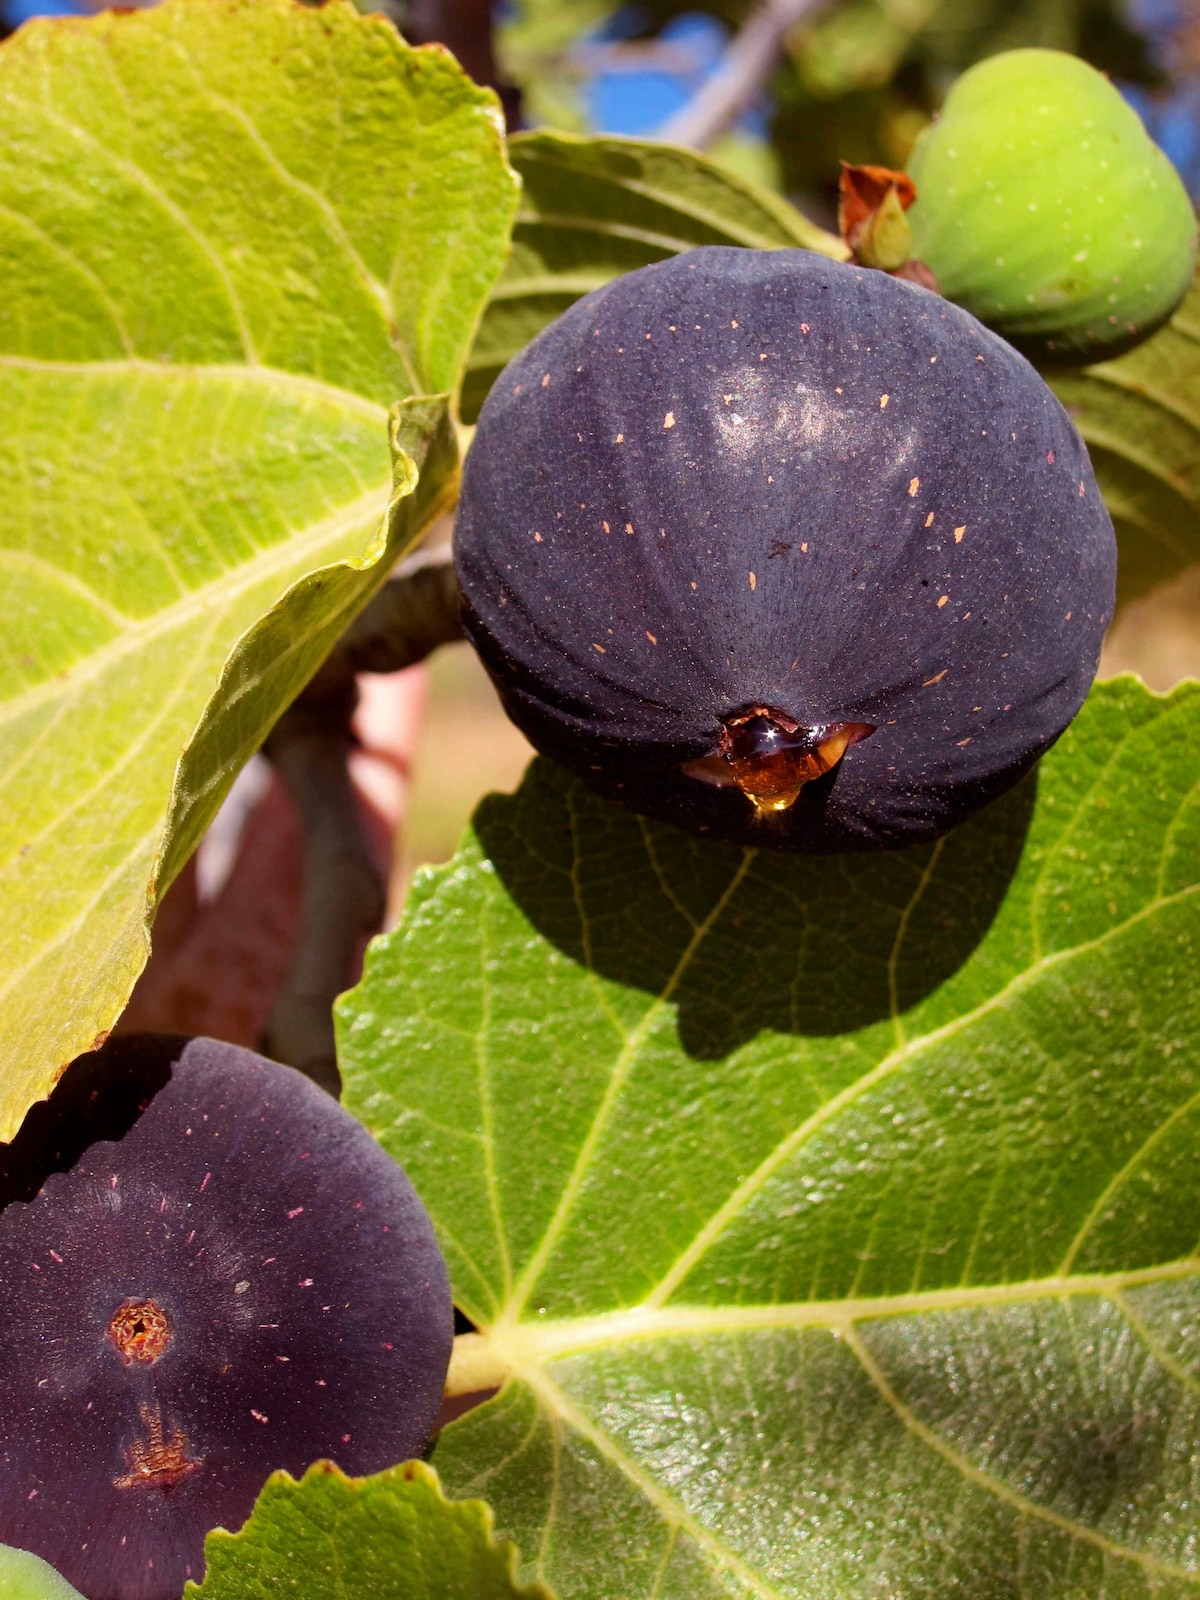 FIgs in September, one of many regional products